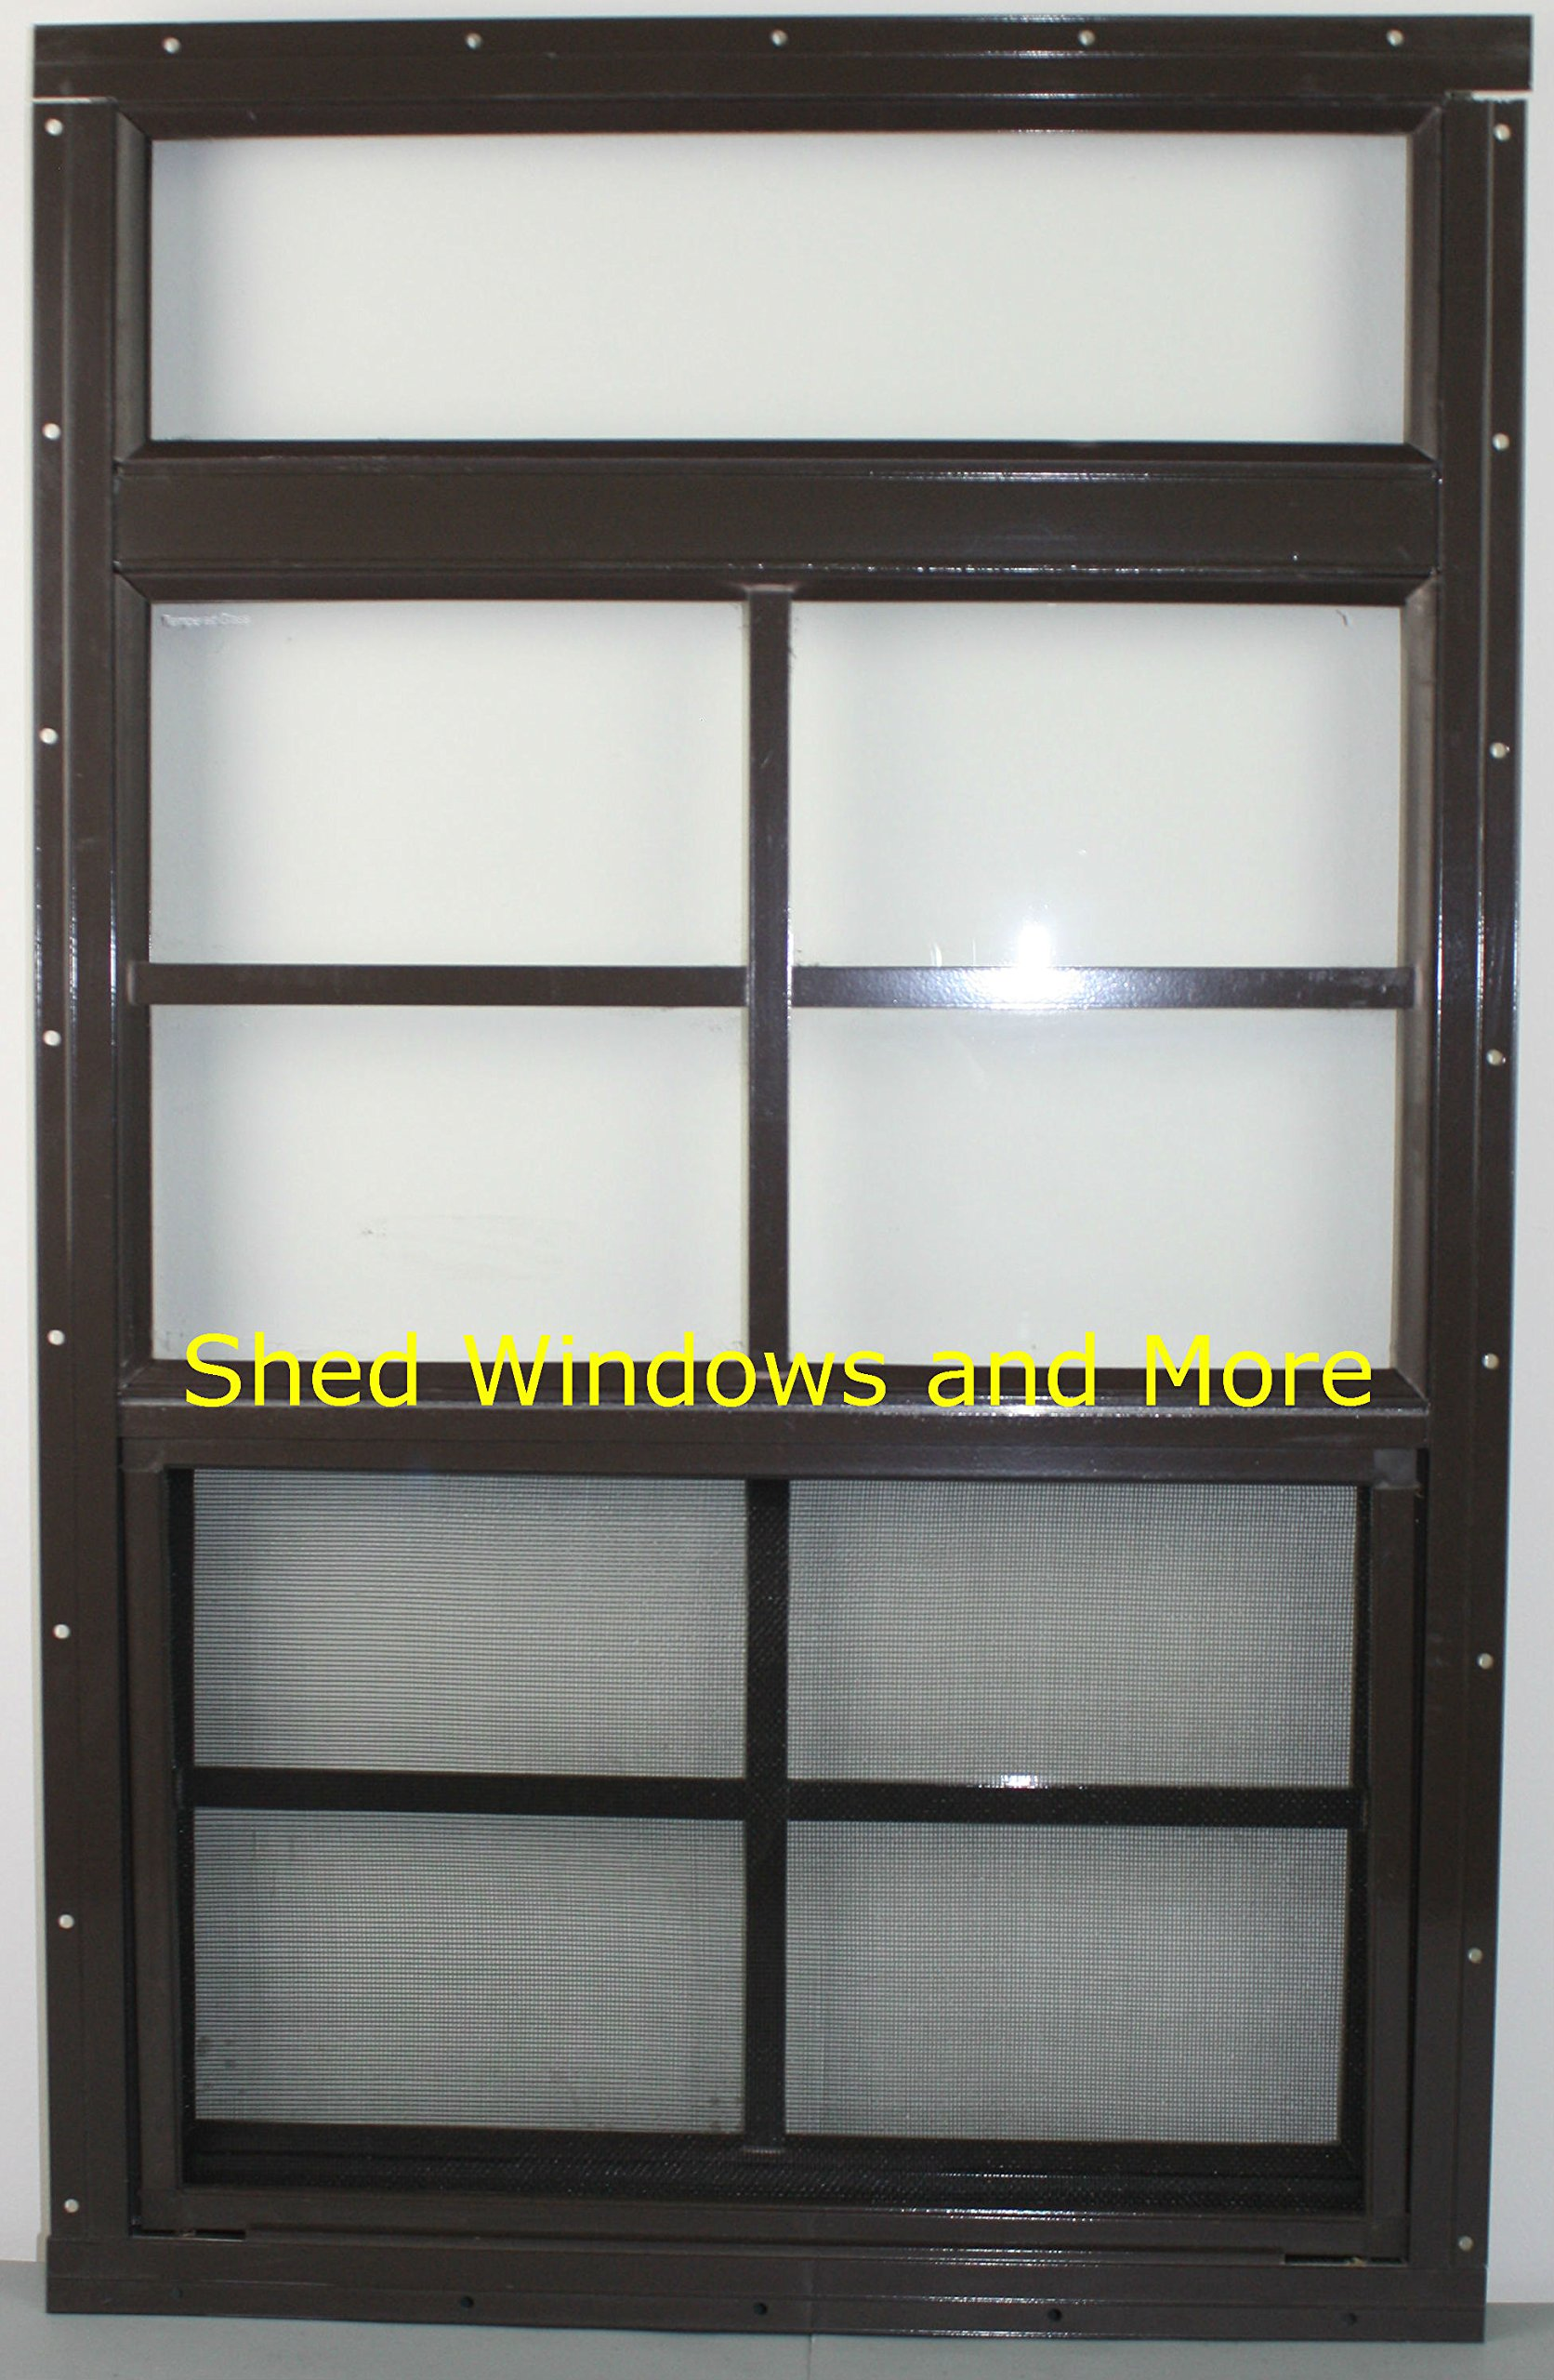 Shed Windows 24'' X 34'' Moreview Brown Flush Mount Safety/Tempered Glass, Playhouse Windows, Chicken Coop Windows by Shed Windows and More (Image #1)